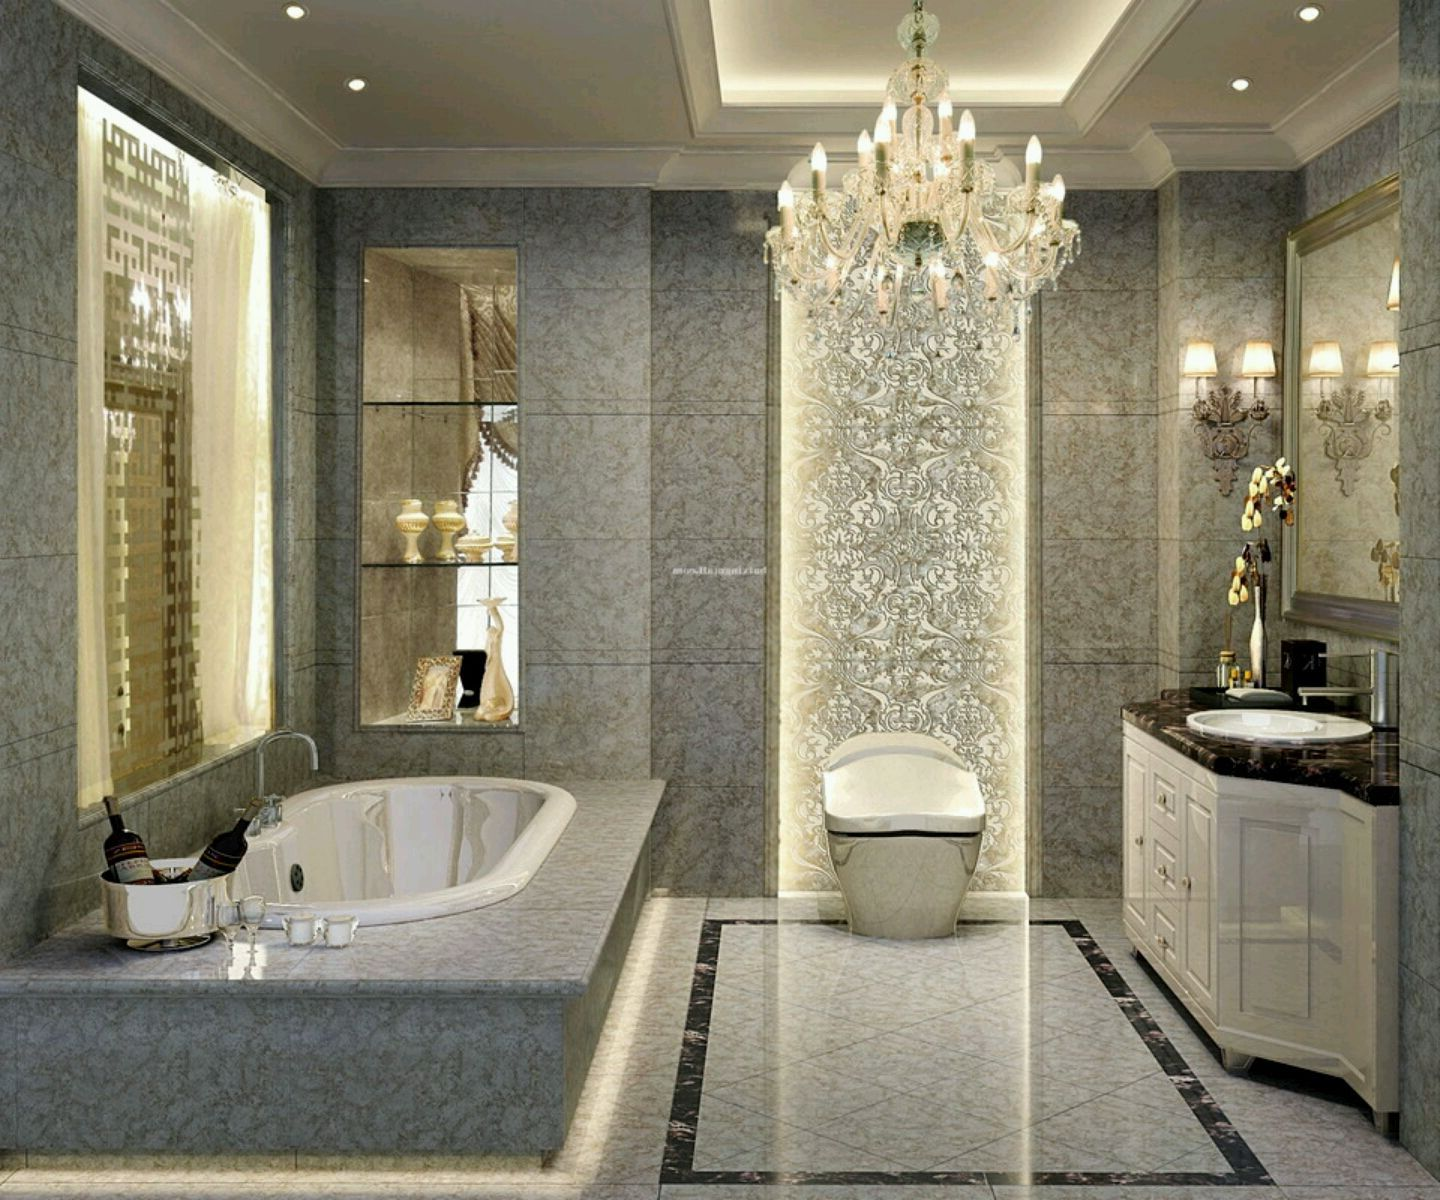 Bathroom Designs Luxury The Best Luxury Bathrooms Ideas On